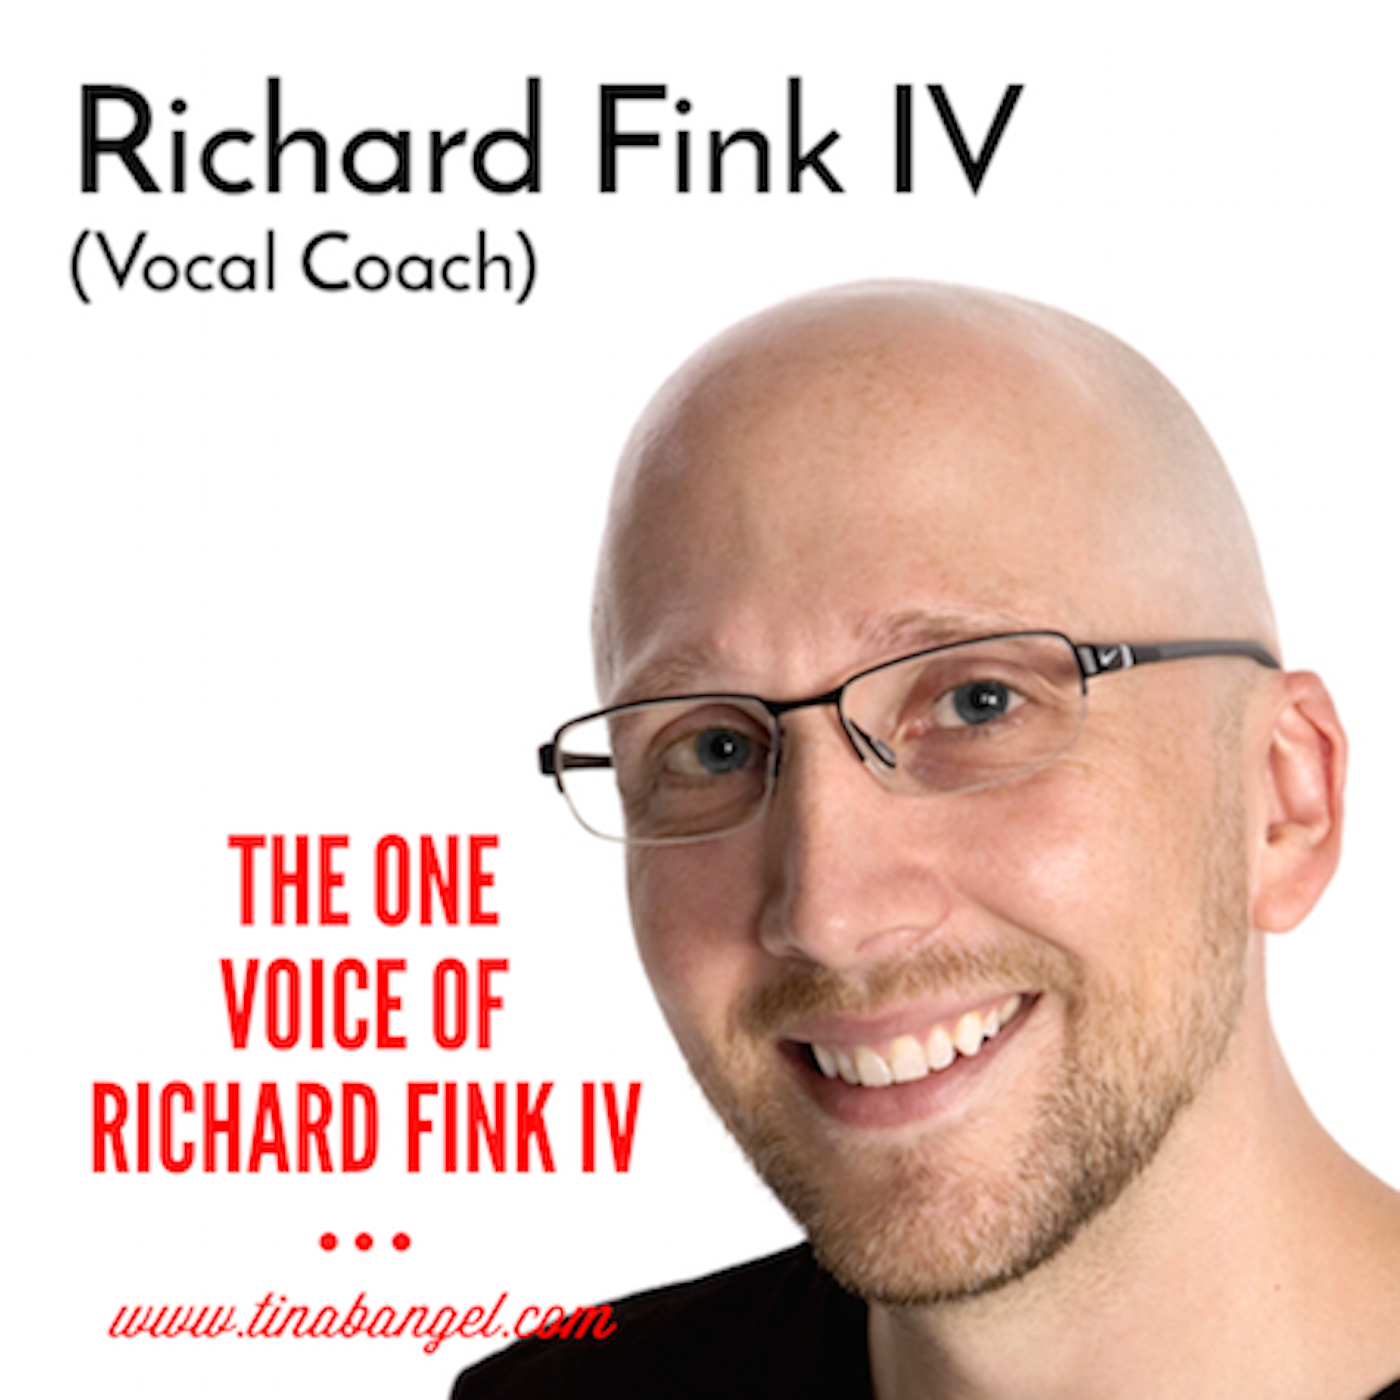 richard fink